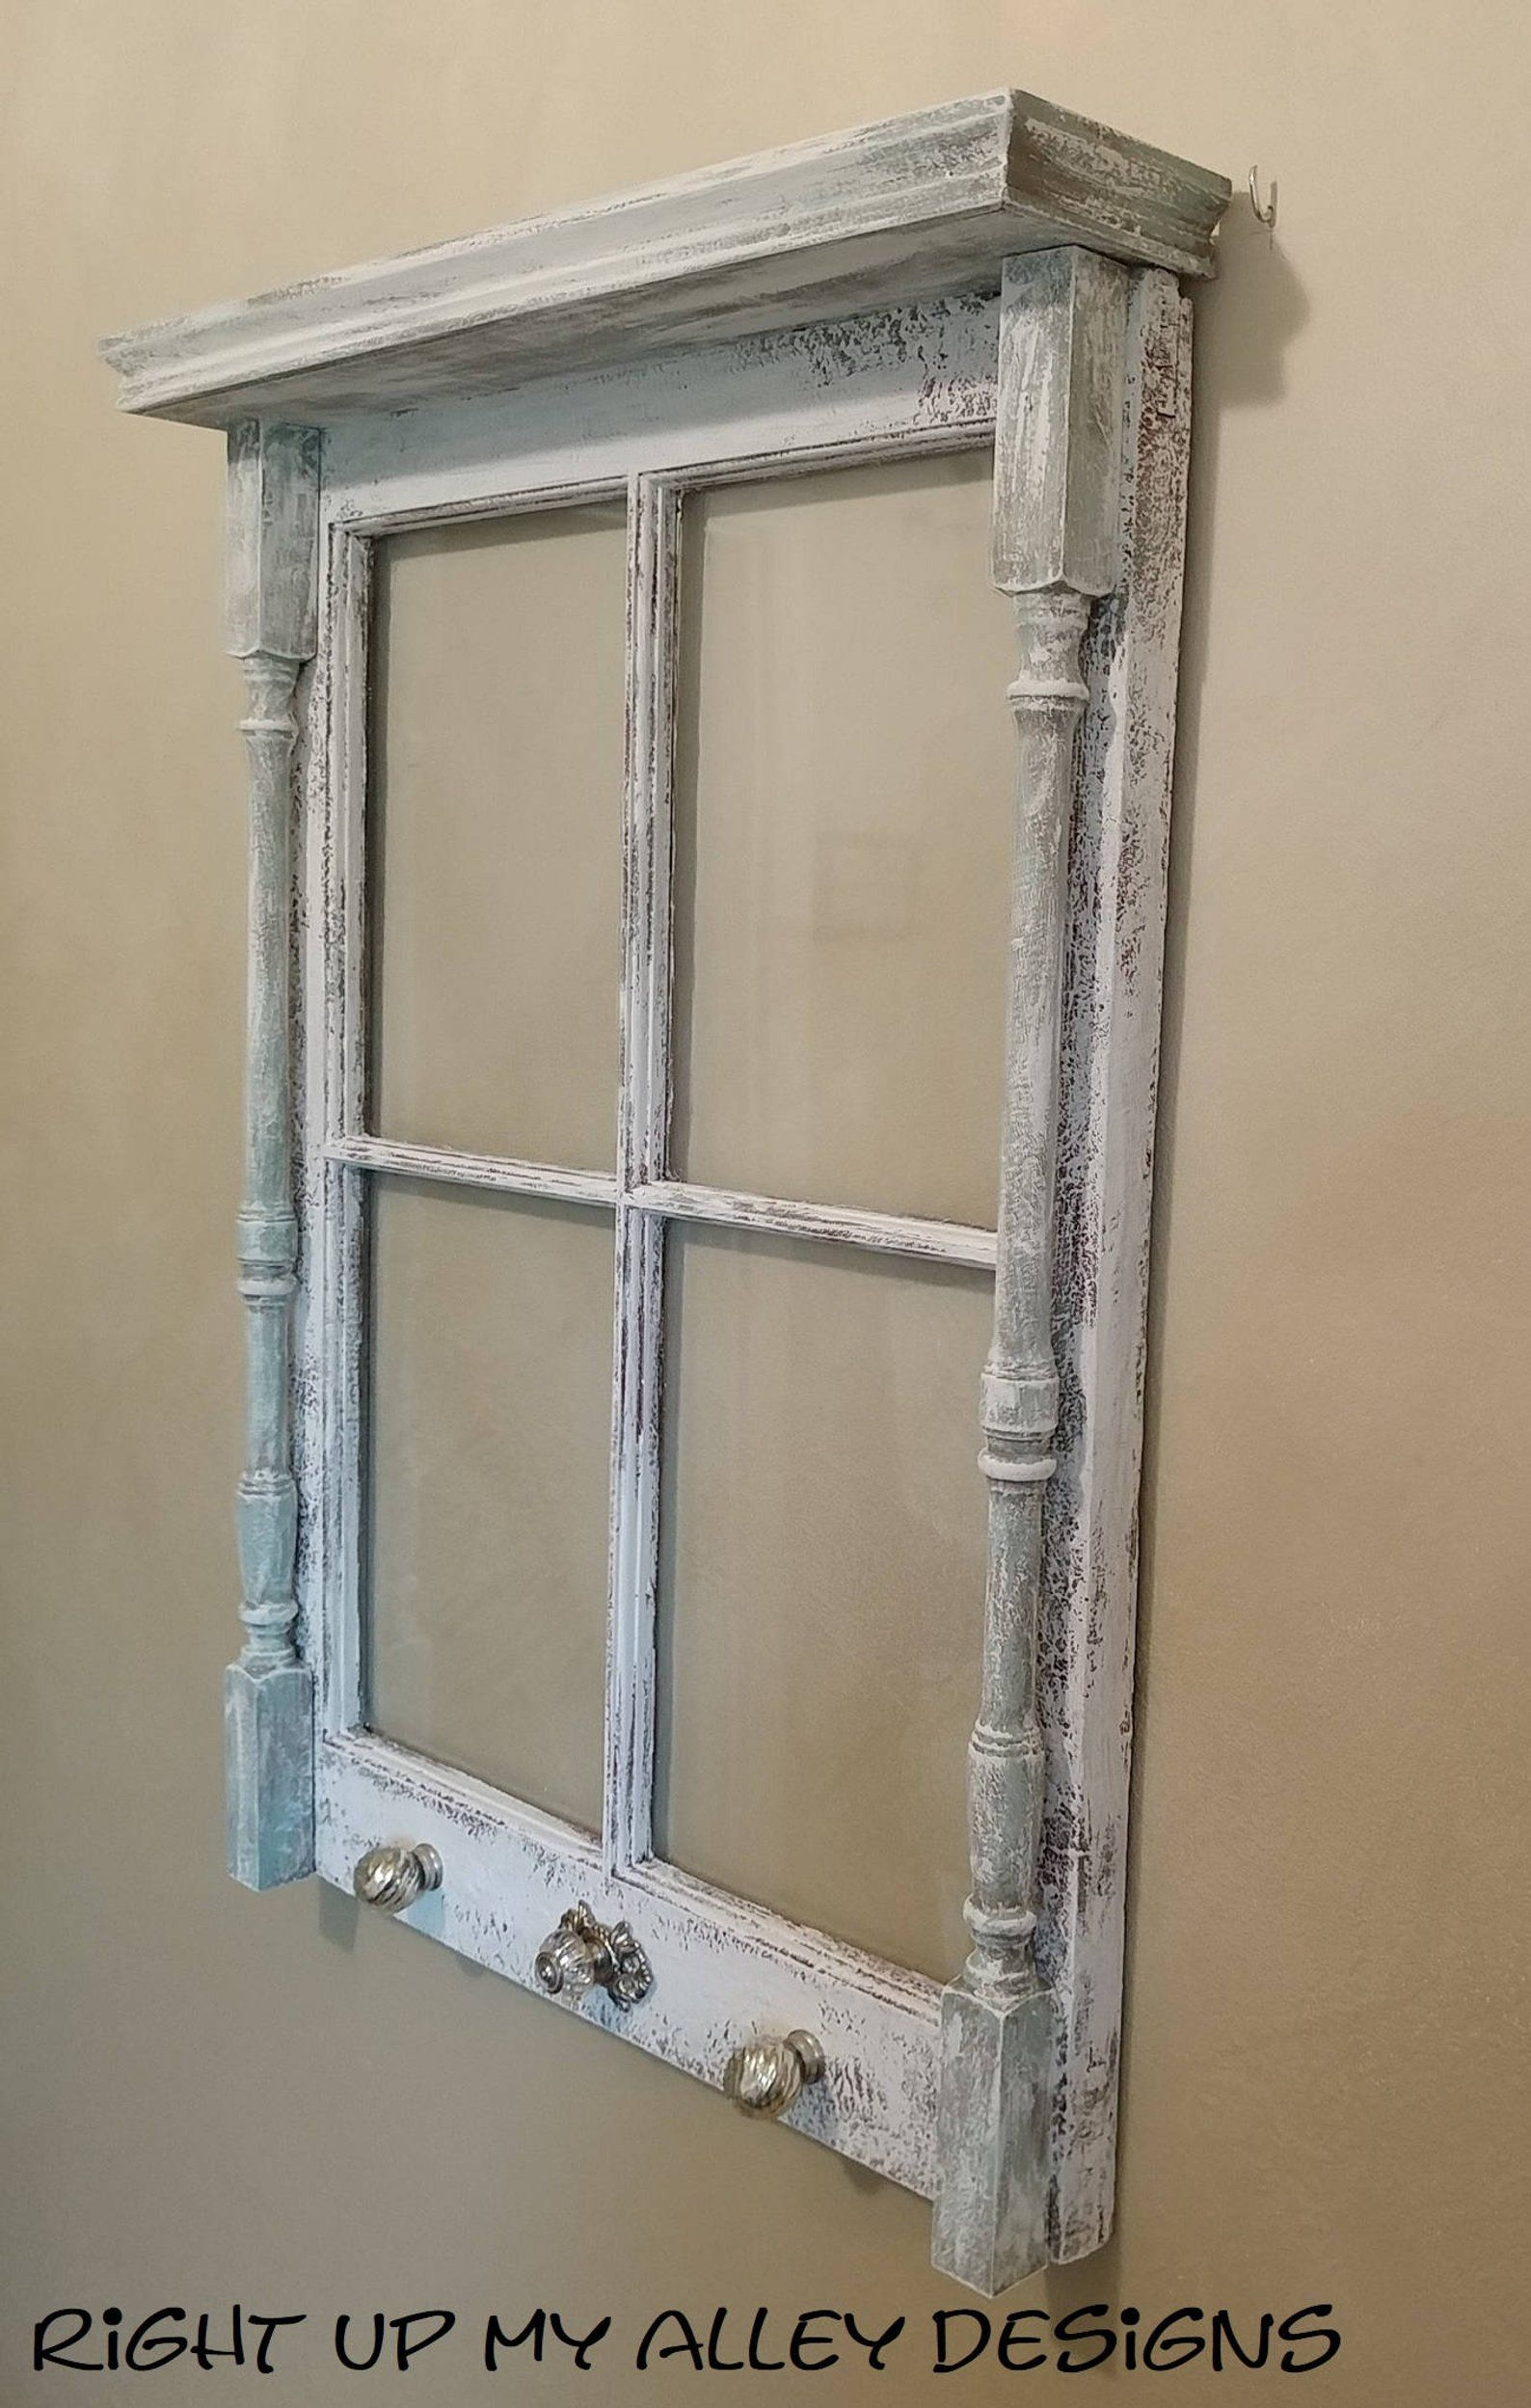 Old Window With Shelf Window Ideas Small 4 Pane Window With Shelf Distressed Window Unique Window Window Decor Upcycled Window Repurposed Old Window Decor Window Decor Decor